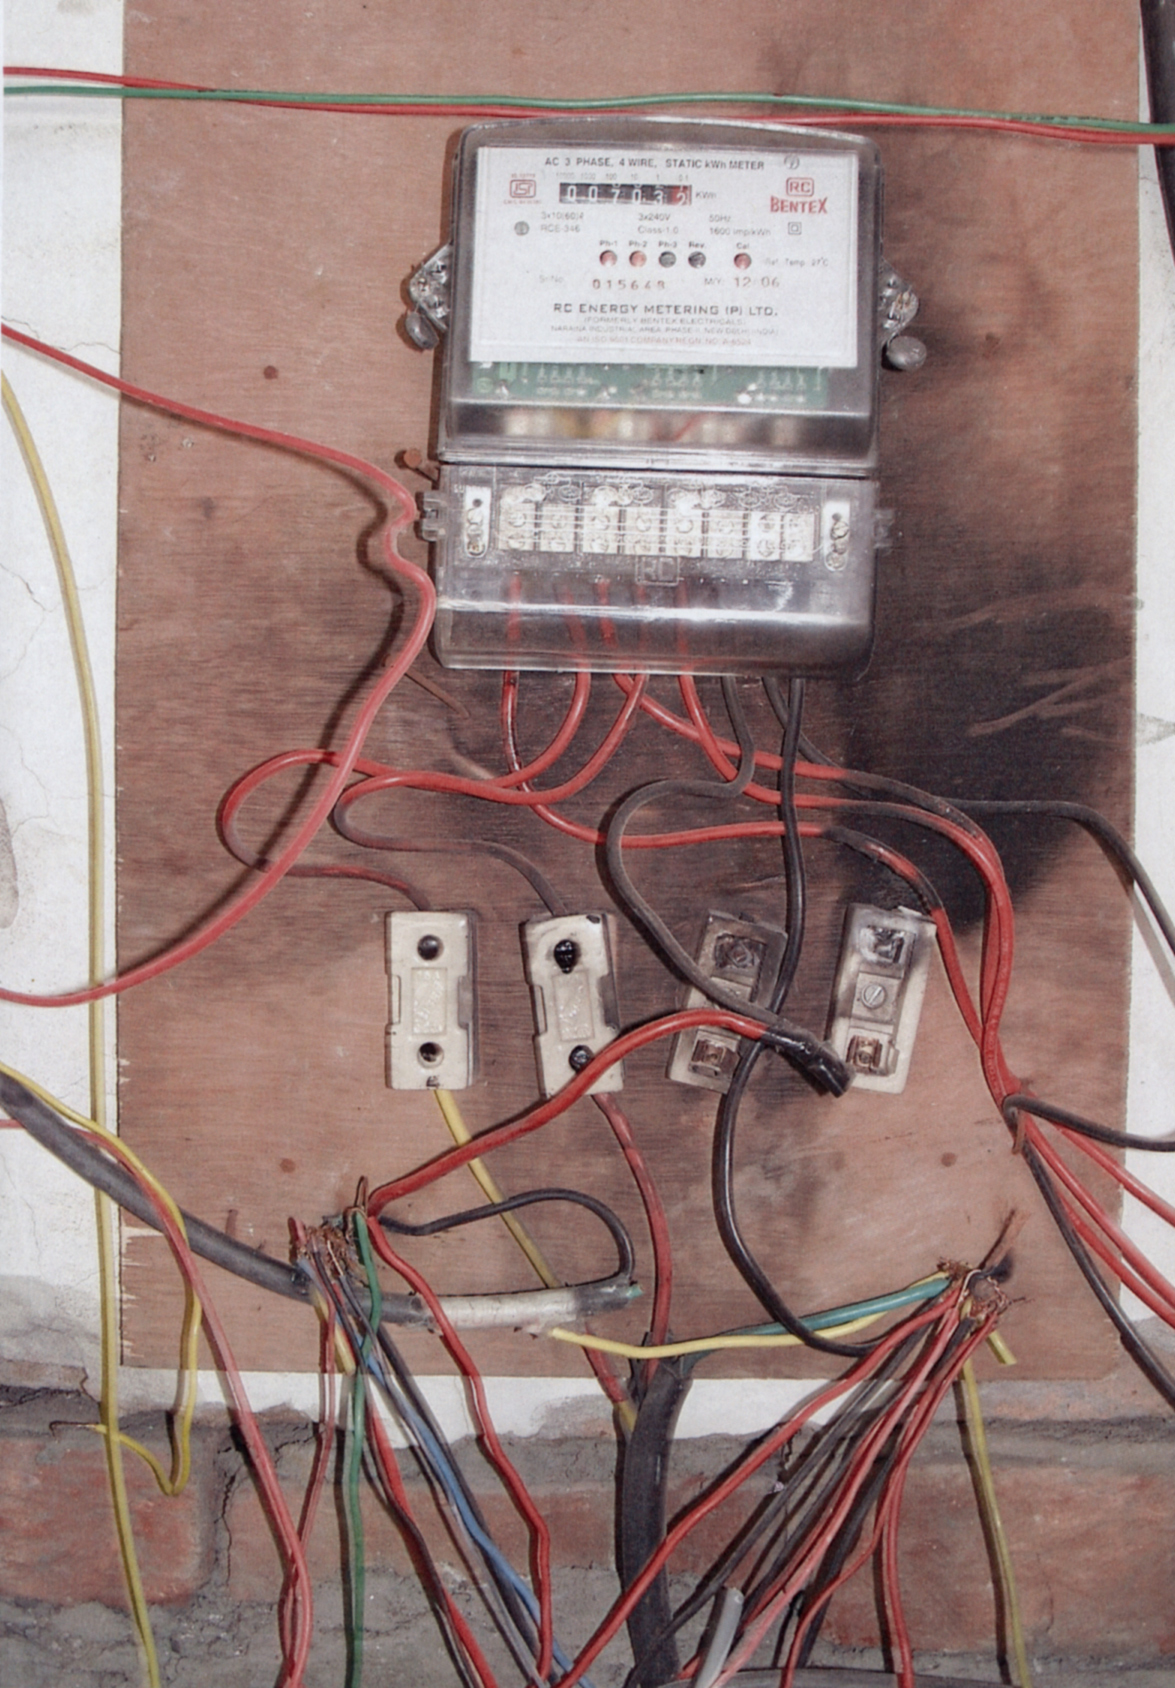 world s worst wiring the top three most shocking electrical rh eandt theiet org electrical wiring regulations uk electrical wiring regulations 17th edition